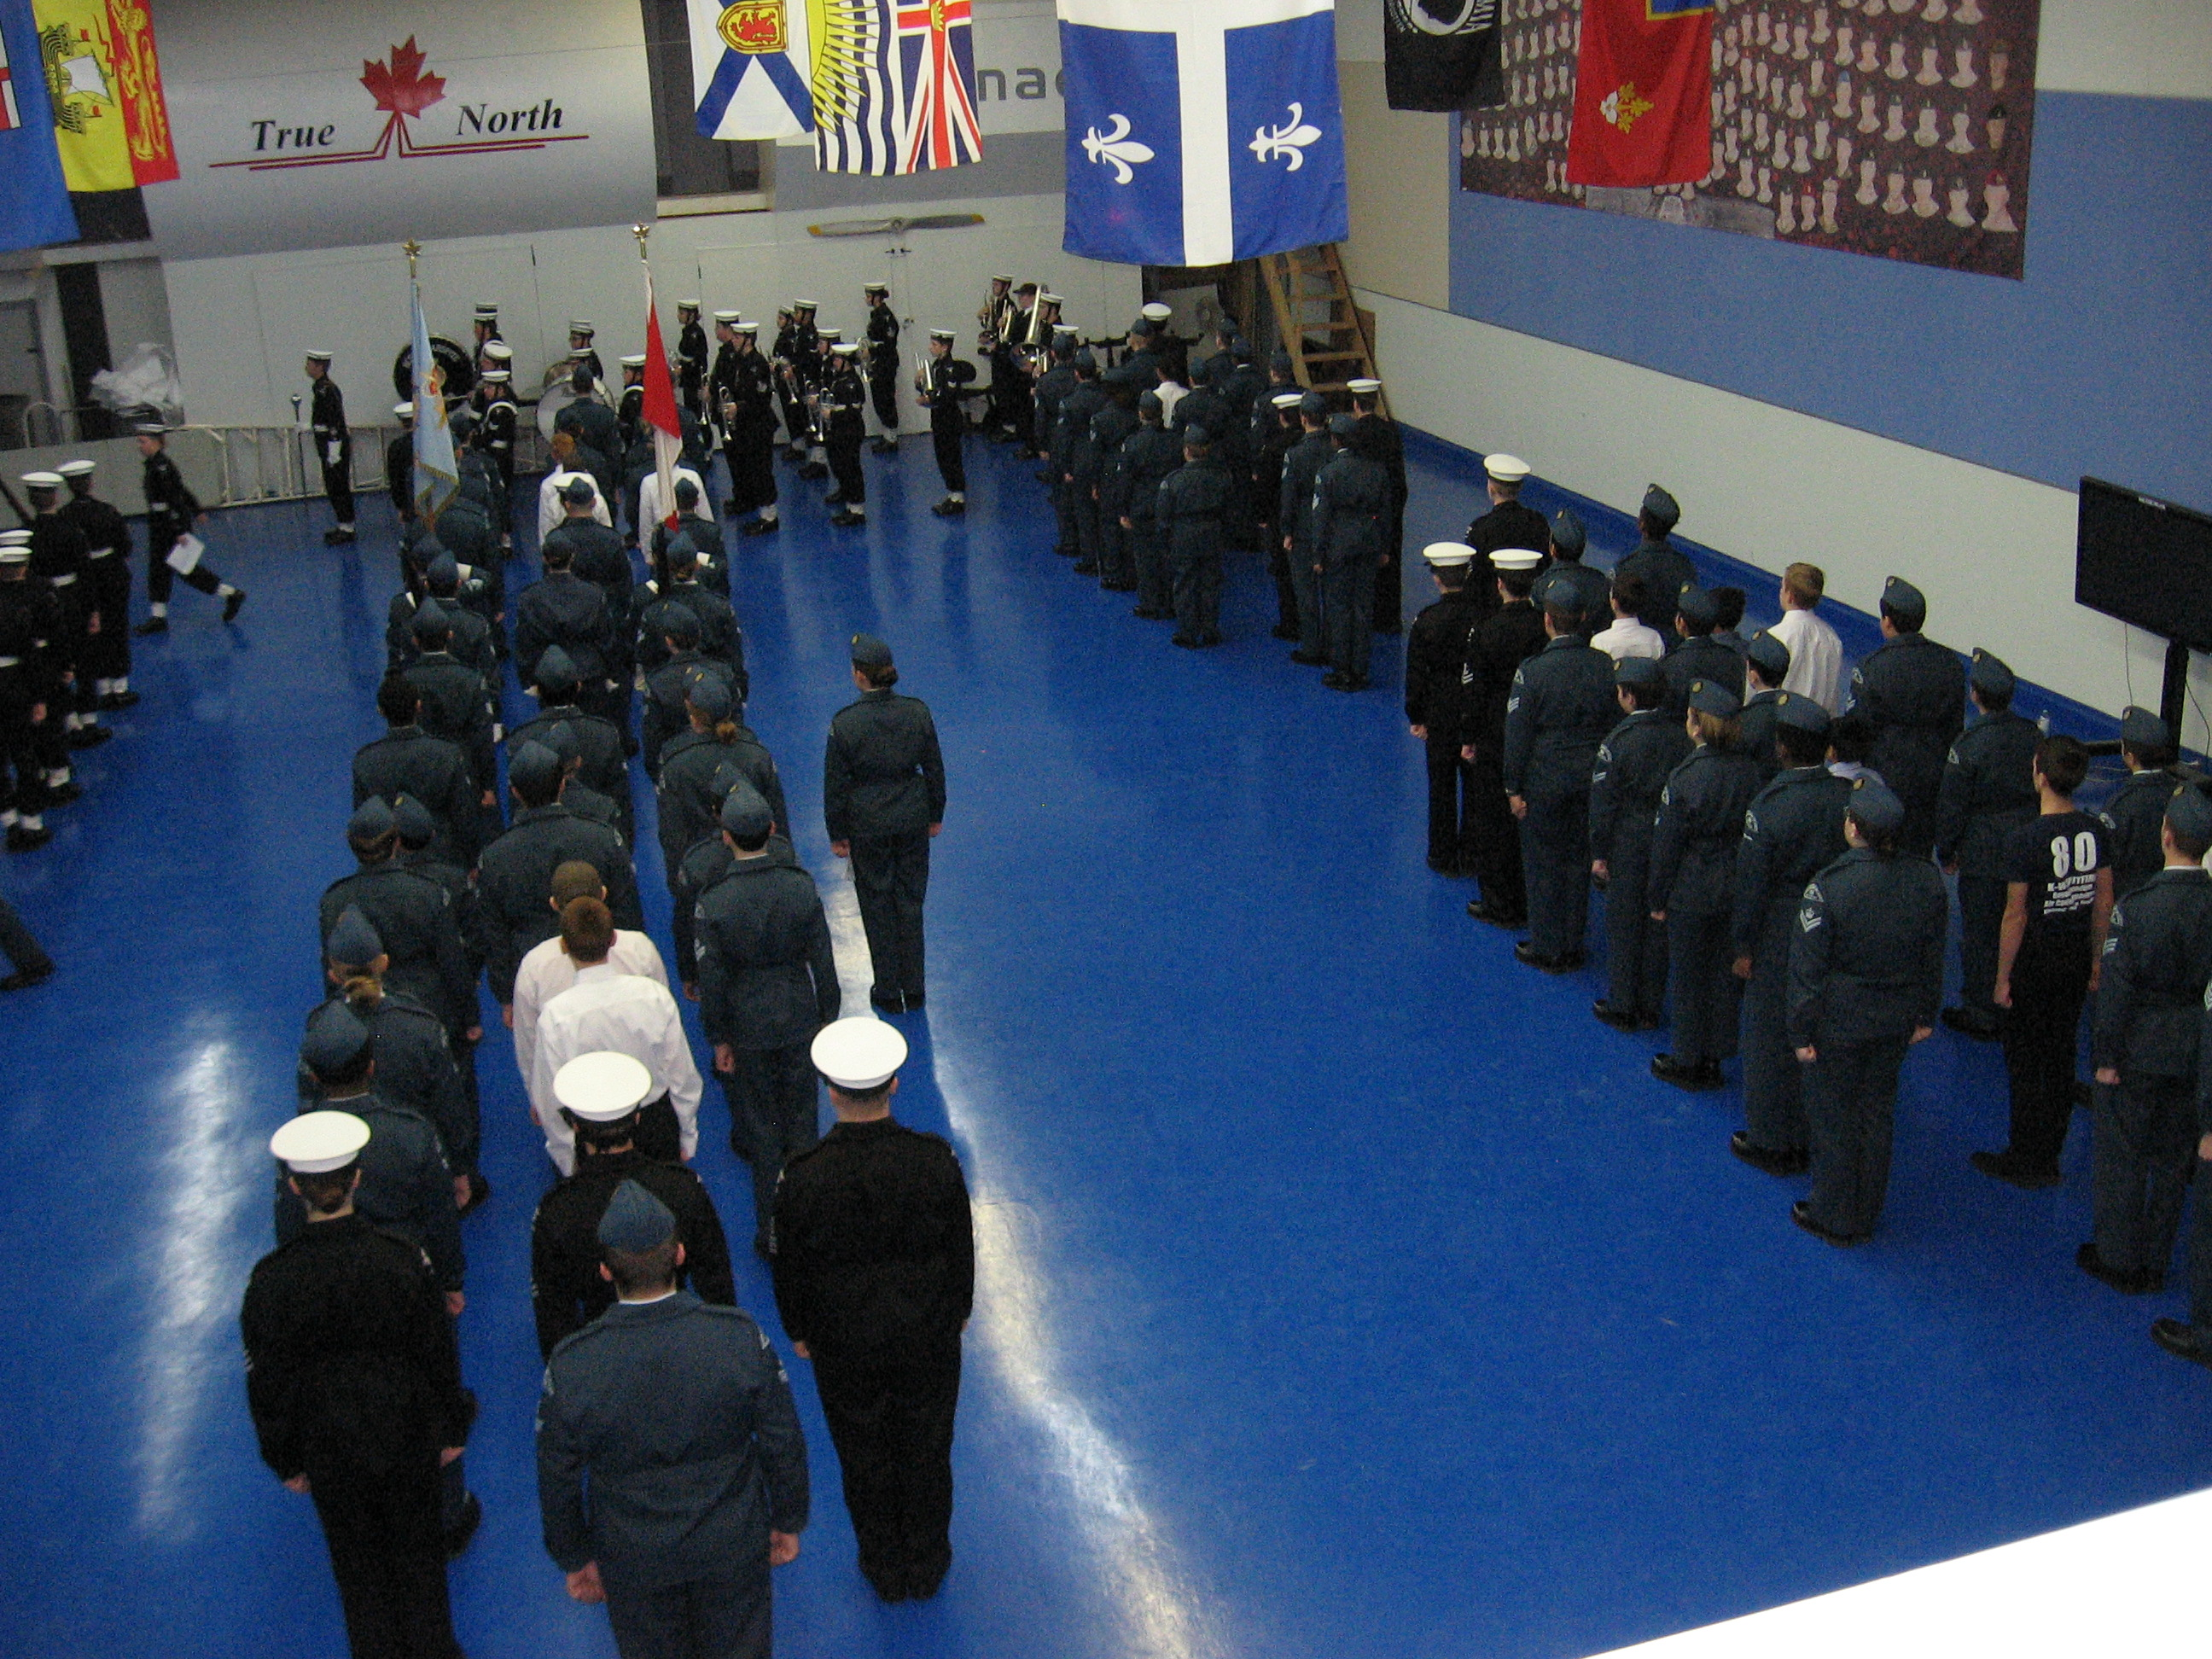 Combined CDs with 94 RCSCC, 80 RCACC and members of the band from 89 RCSCC